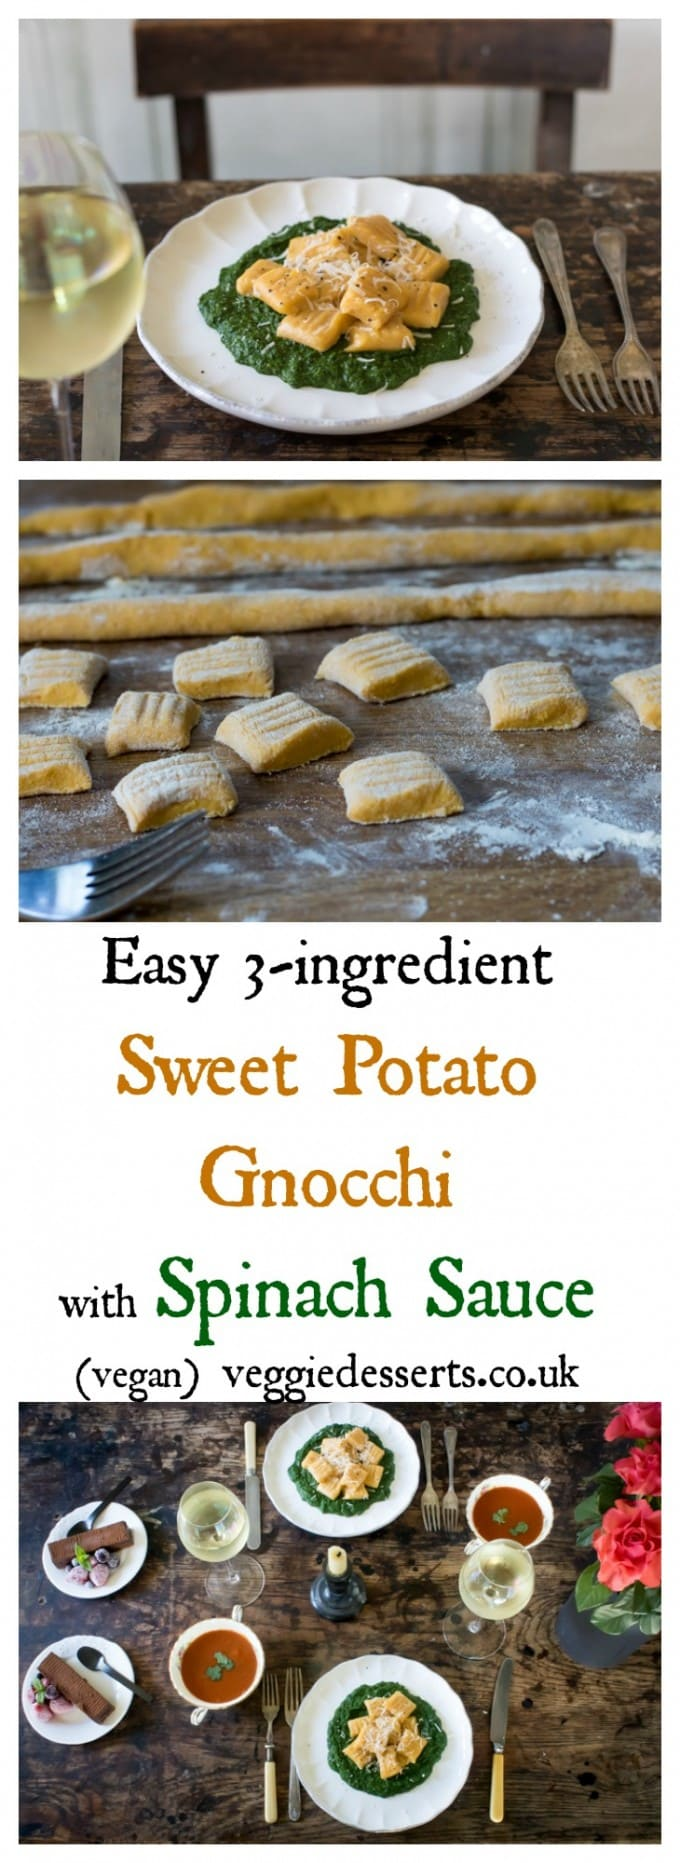 Sweet potato gnocchi is so easy and delicious! It only needs three ingredients and takes about 20 minutes to make. Here, I've paired it with a quick creamy spinach sauce that's rich and moreish. I've used mostly frozen ingredients, so this is a convenient meal to put together quickly, though you can use fresh as well. #gnocchi #sweetpotatognocchi #italianrecipe #sweetpotato